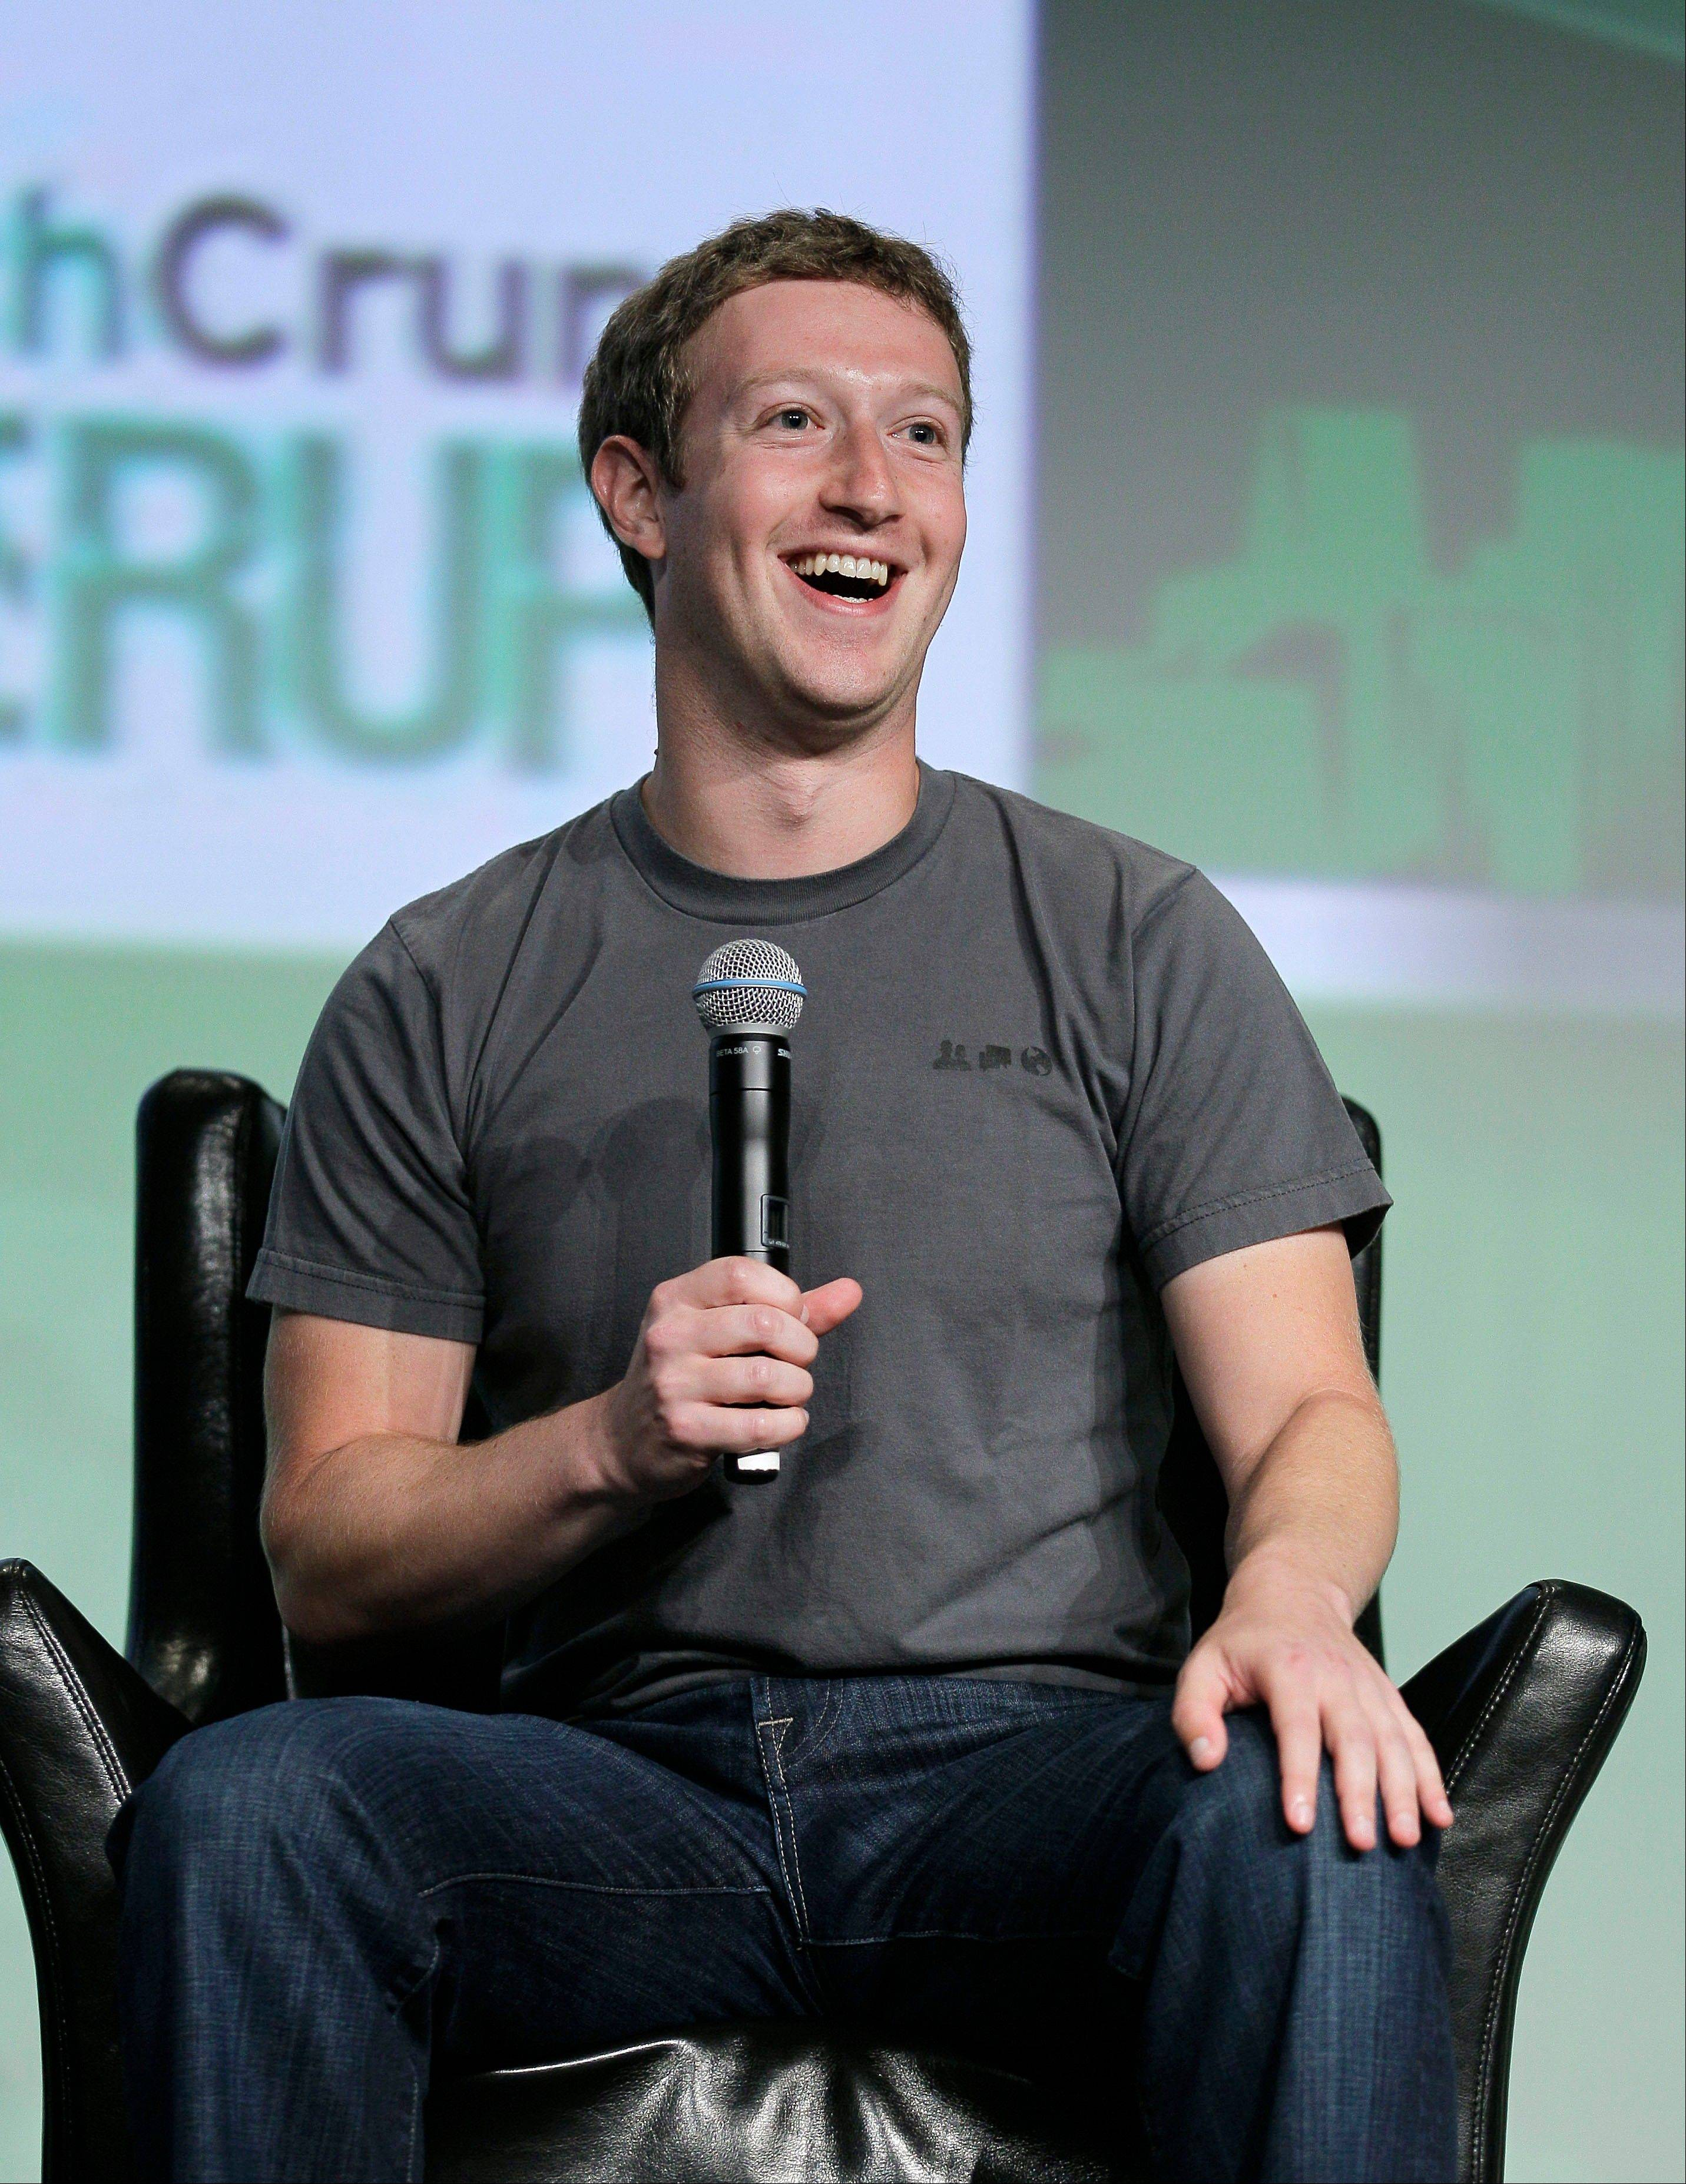 Facebook CEO Mark Zuckerberg speaks during a �fireside chat� at a conference organized by technology blog TechCrunch in San Francisco, Tuesday, Sept. 11, 2012.